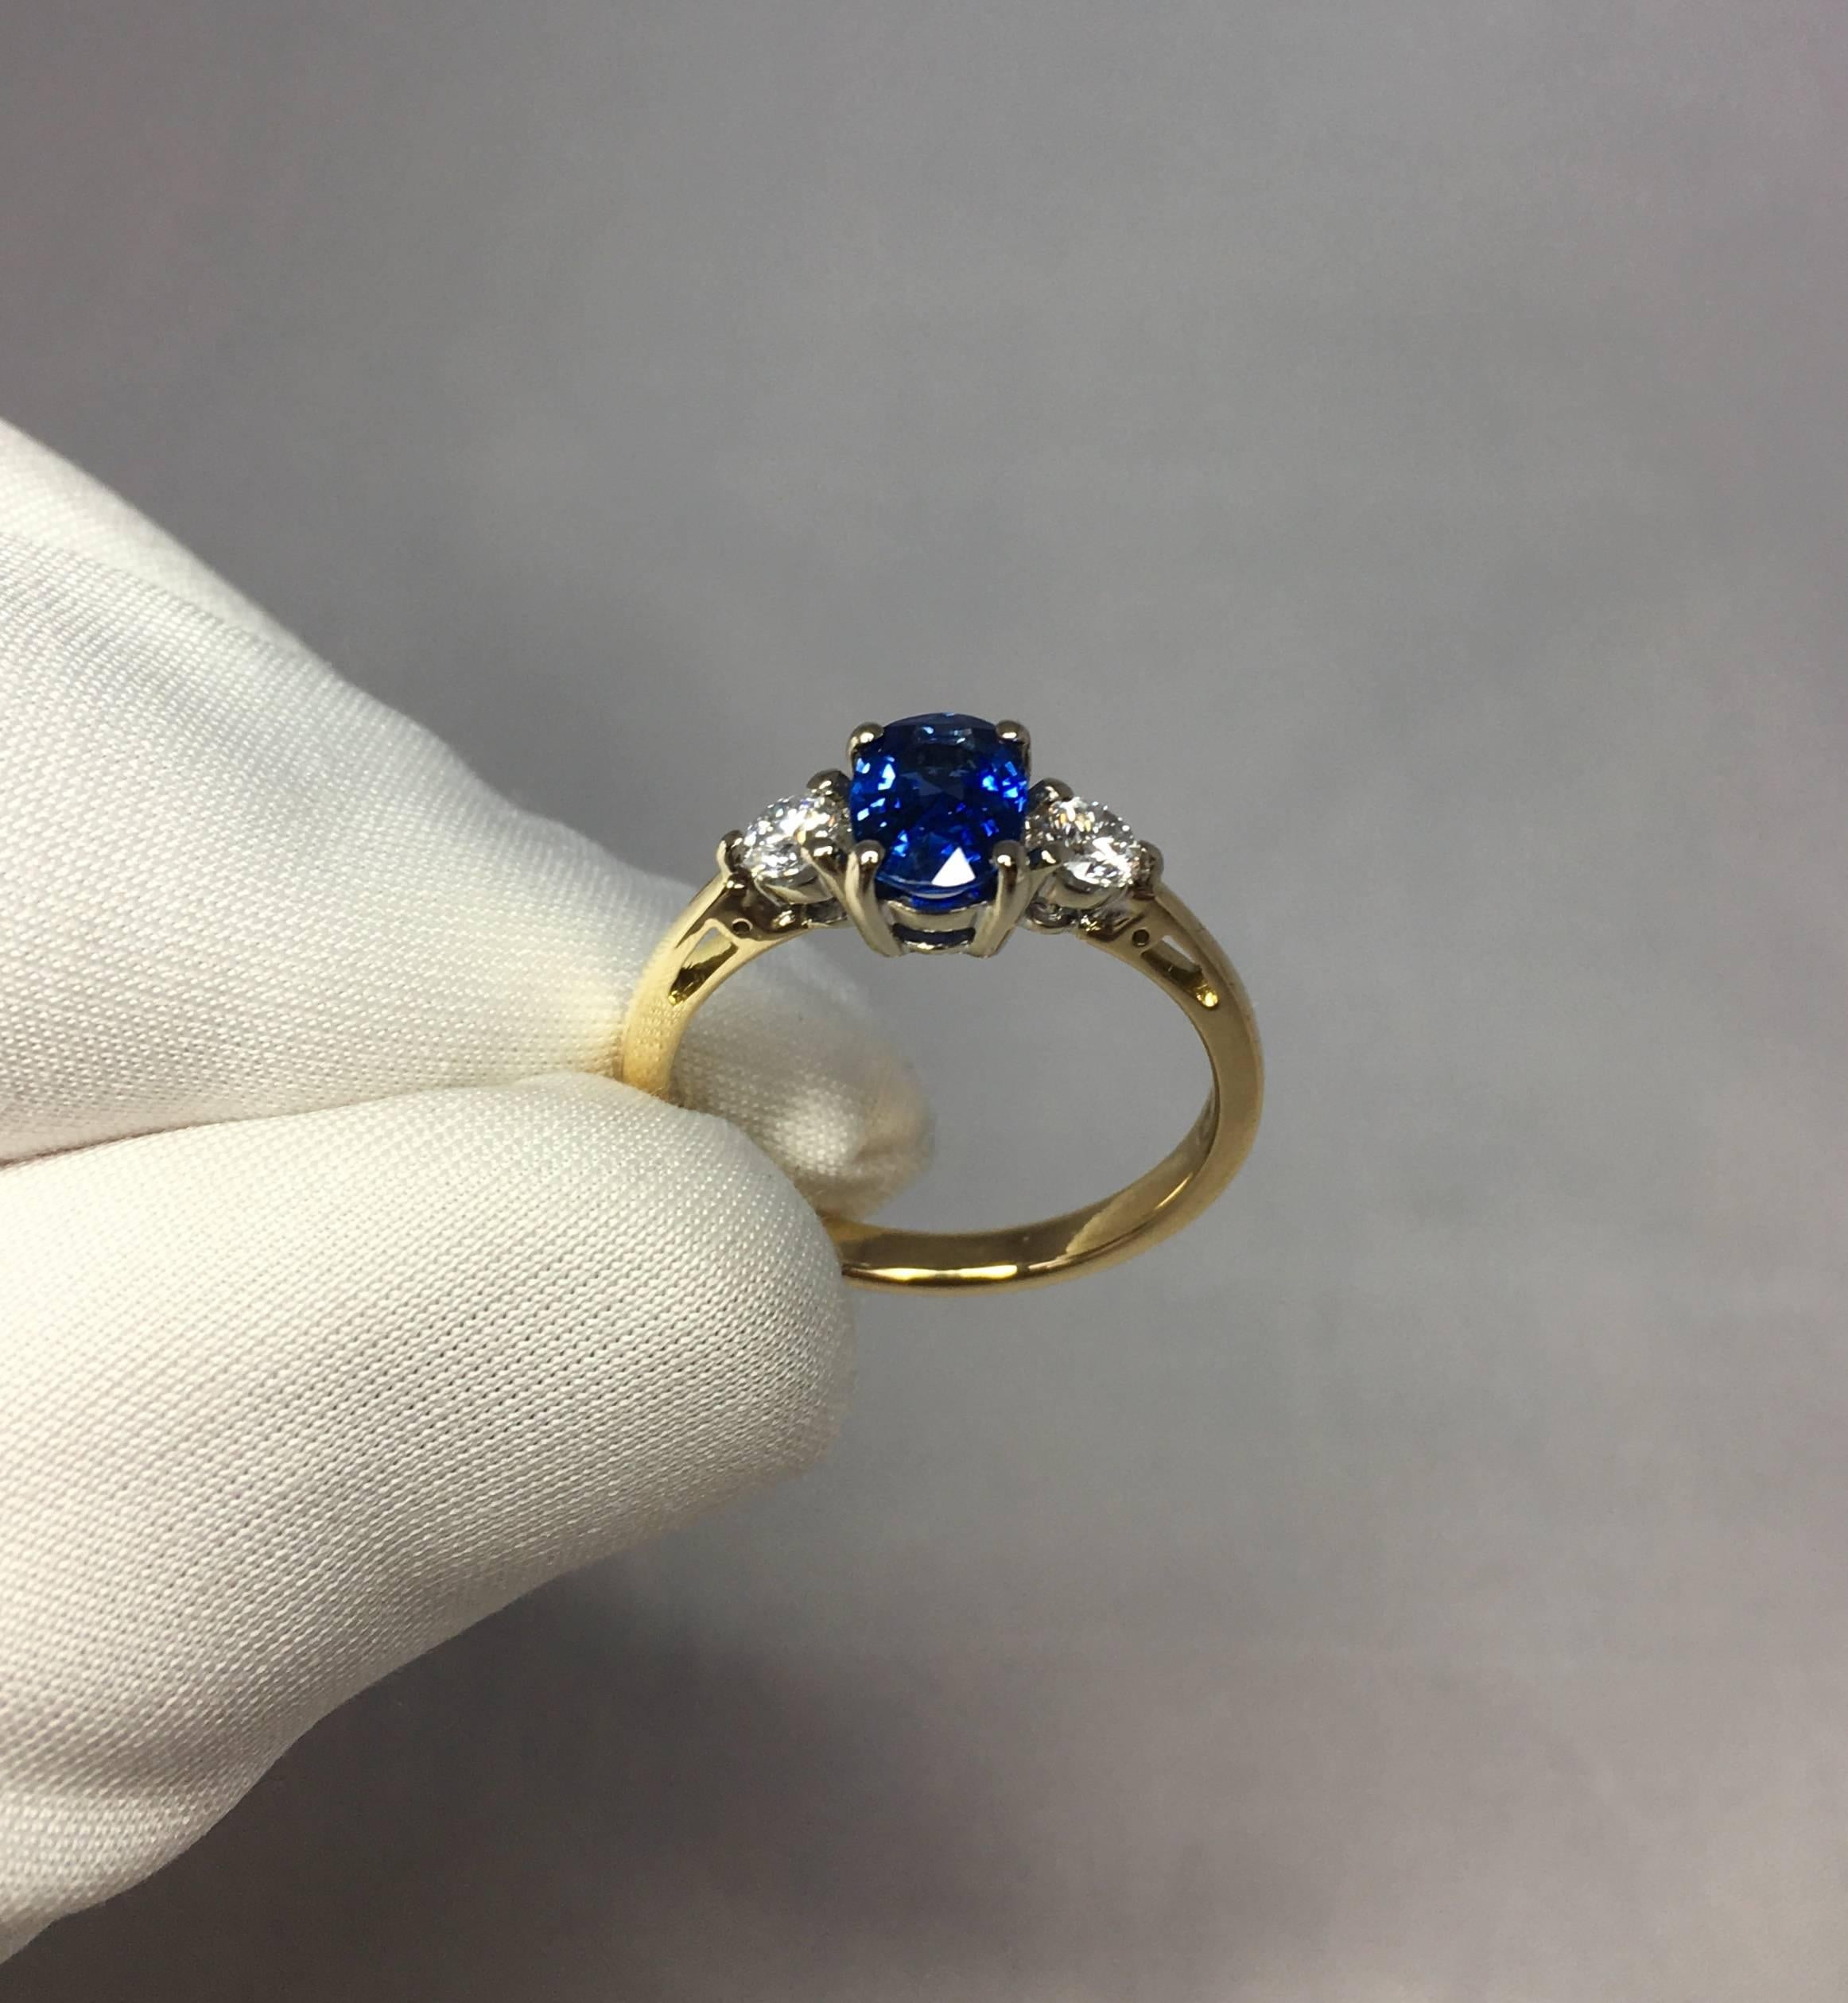 victorian weighing sapphire cut blue an vintage centered ring in pin carat and engagement gold single rings diamonds natural approximately with made yellow accented